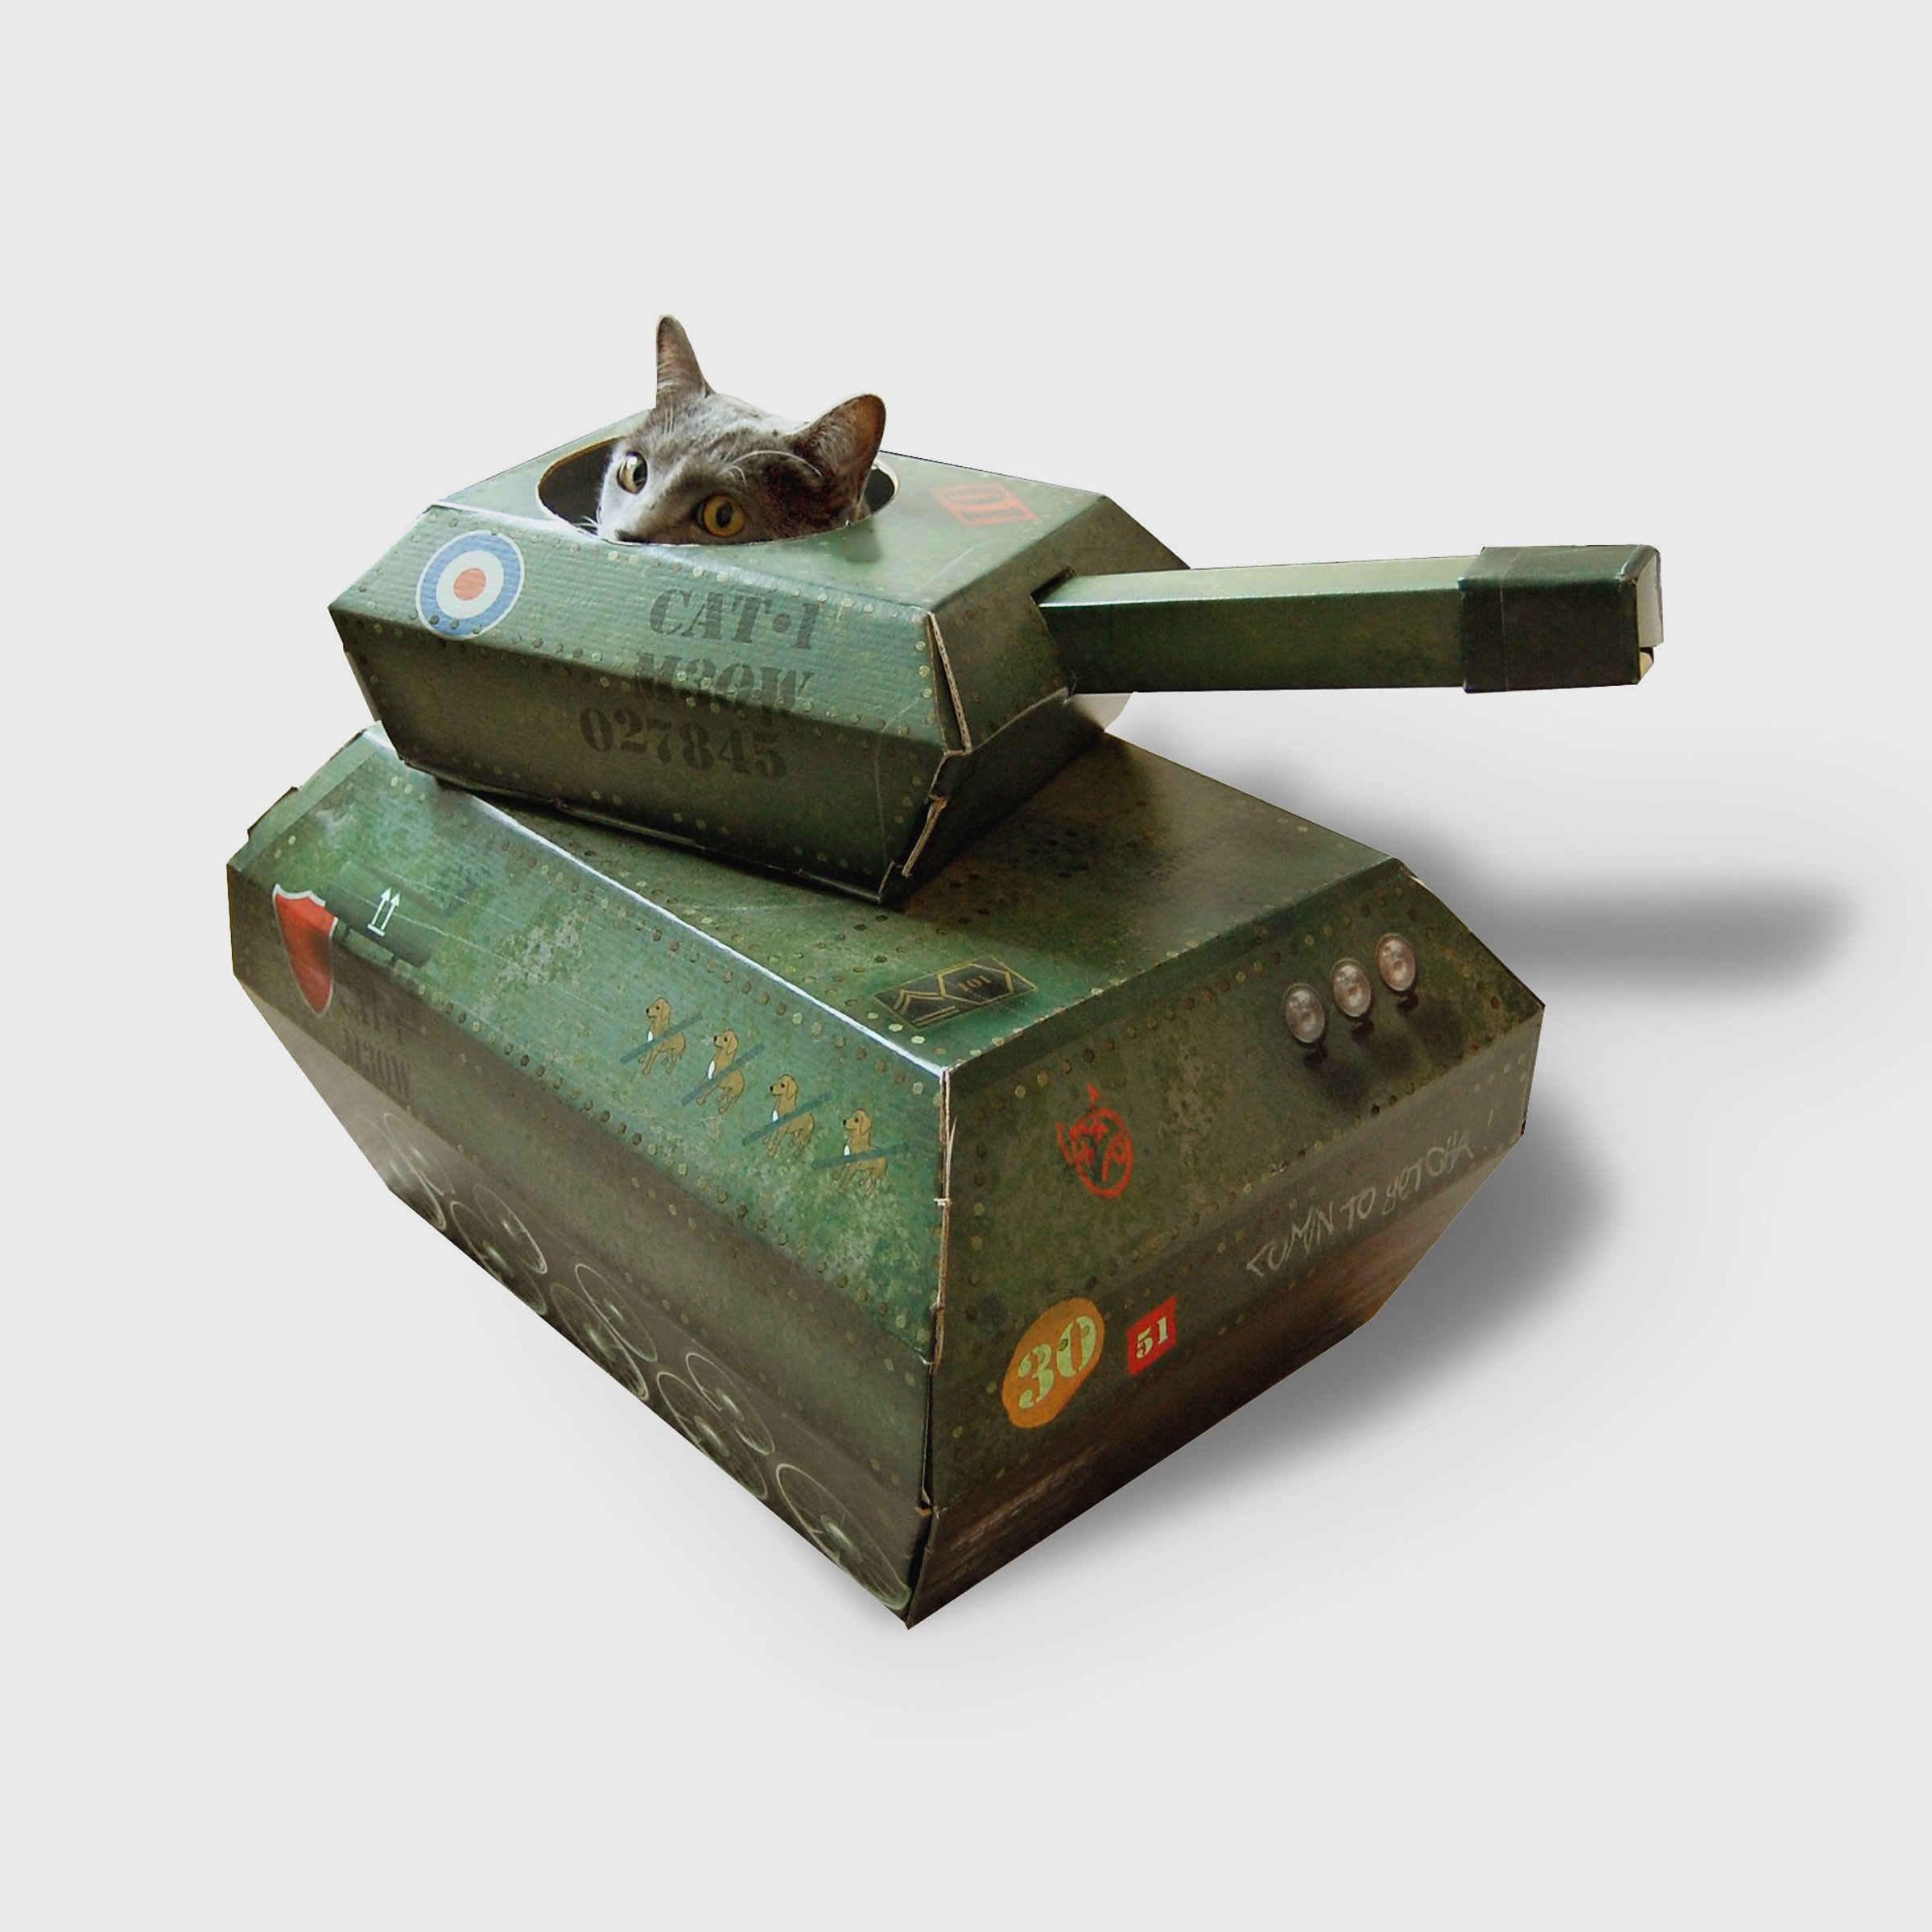 Cardboard Tank for Cats